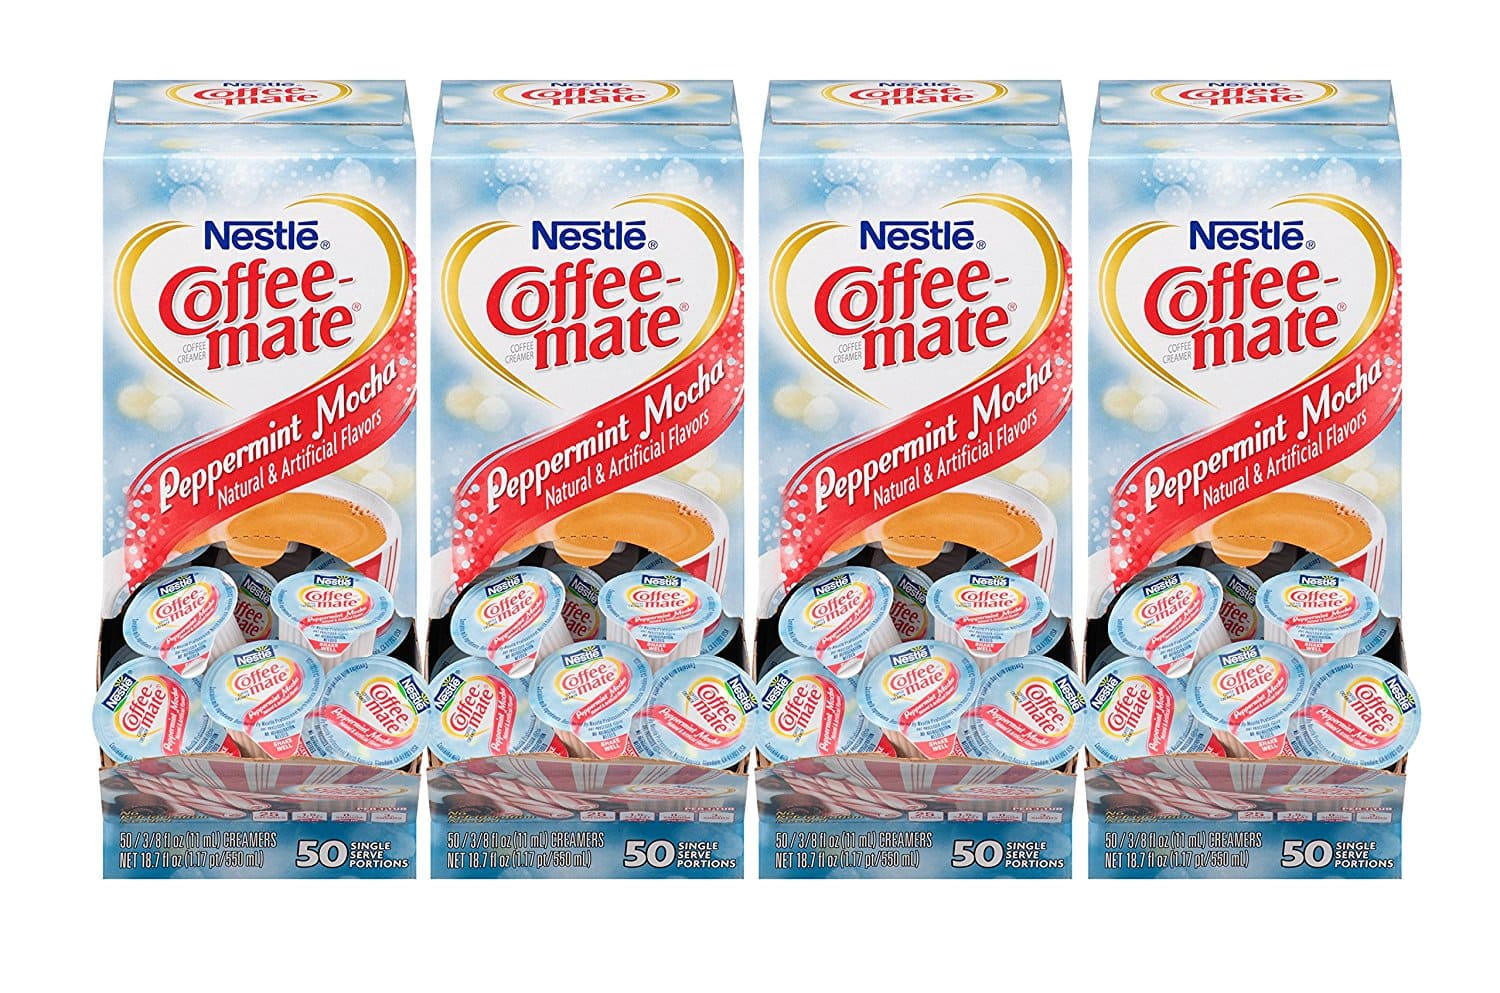 4-Pack 50-Count Nestle Coffee-Mate Creamer Singles (Peppermint Mocha) $7.60 or less + free shipping @ Amazon